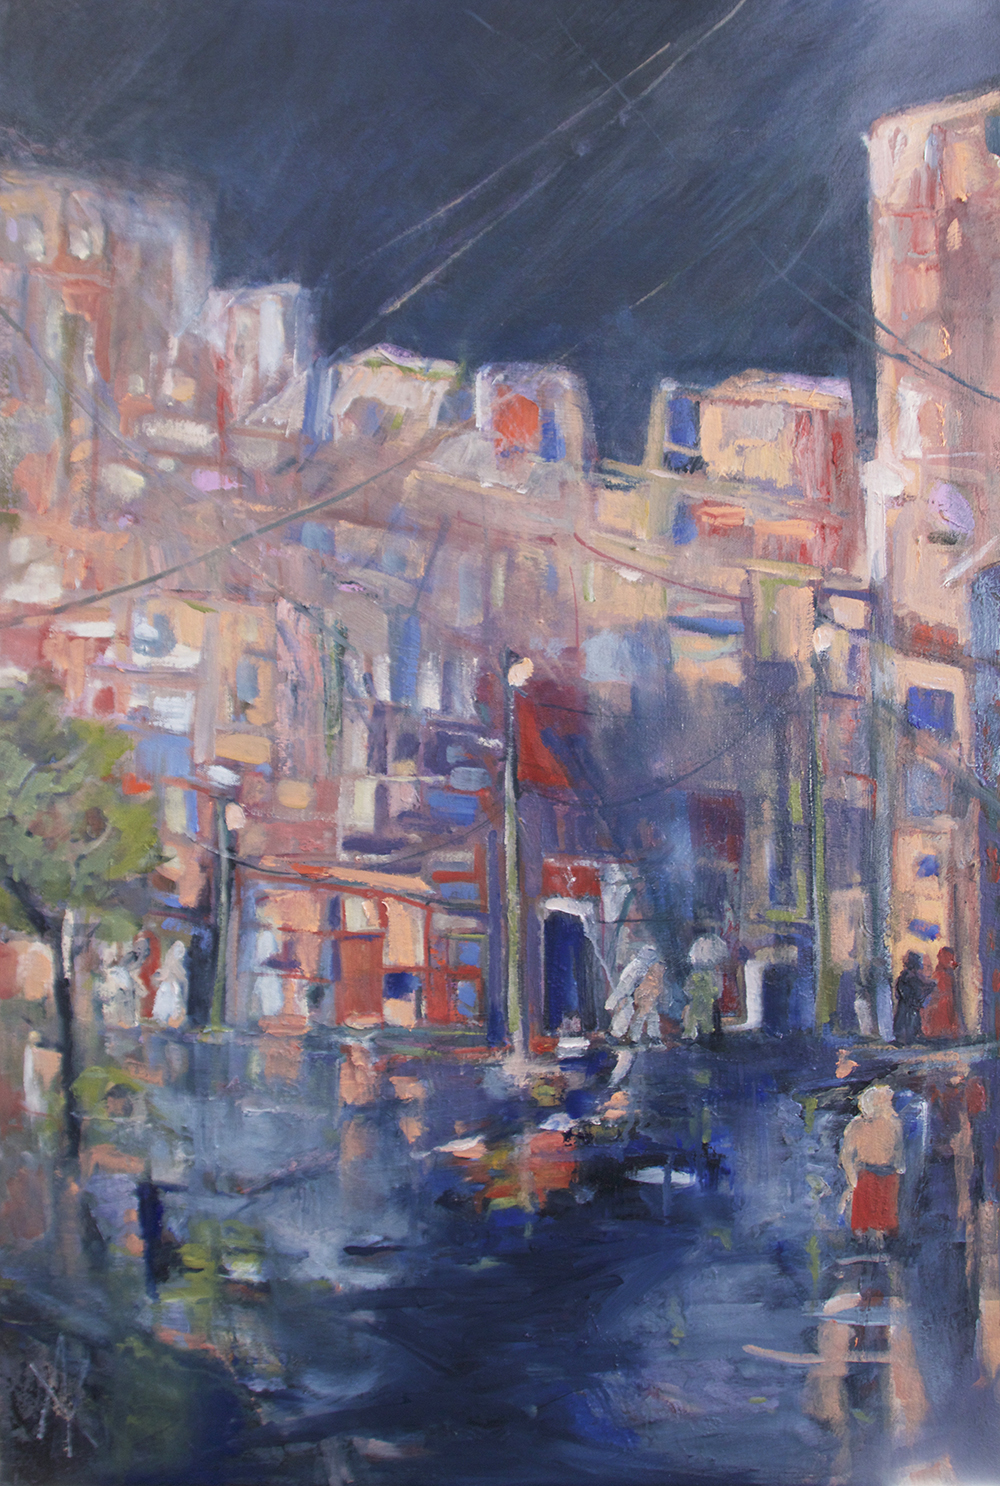 TITLE:  Wet night in L'Viv  MEDIUM: Oil on canvas DIMENSIONS: H91 x W61cm